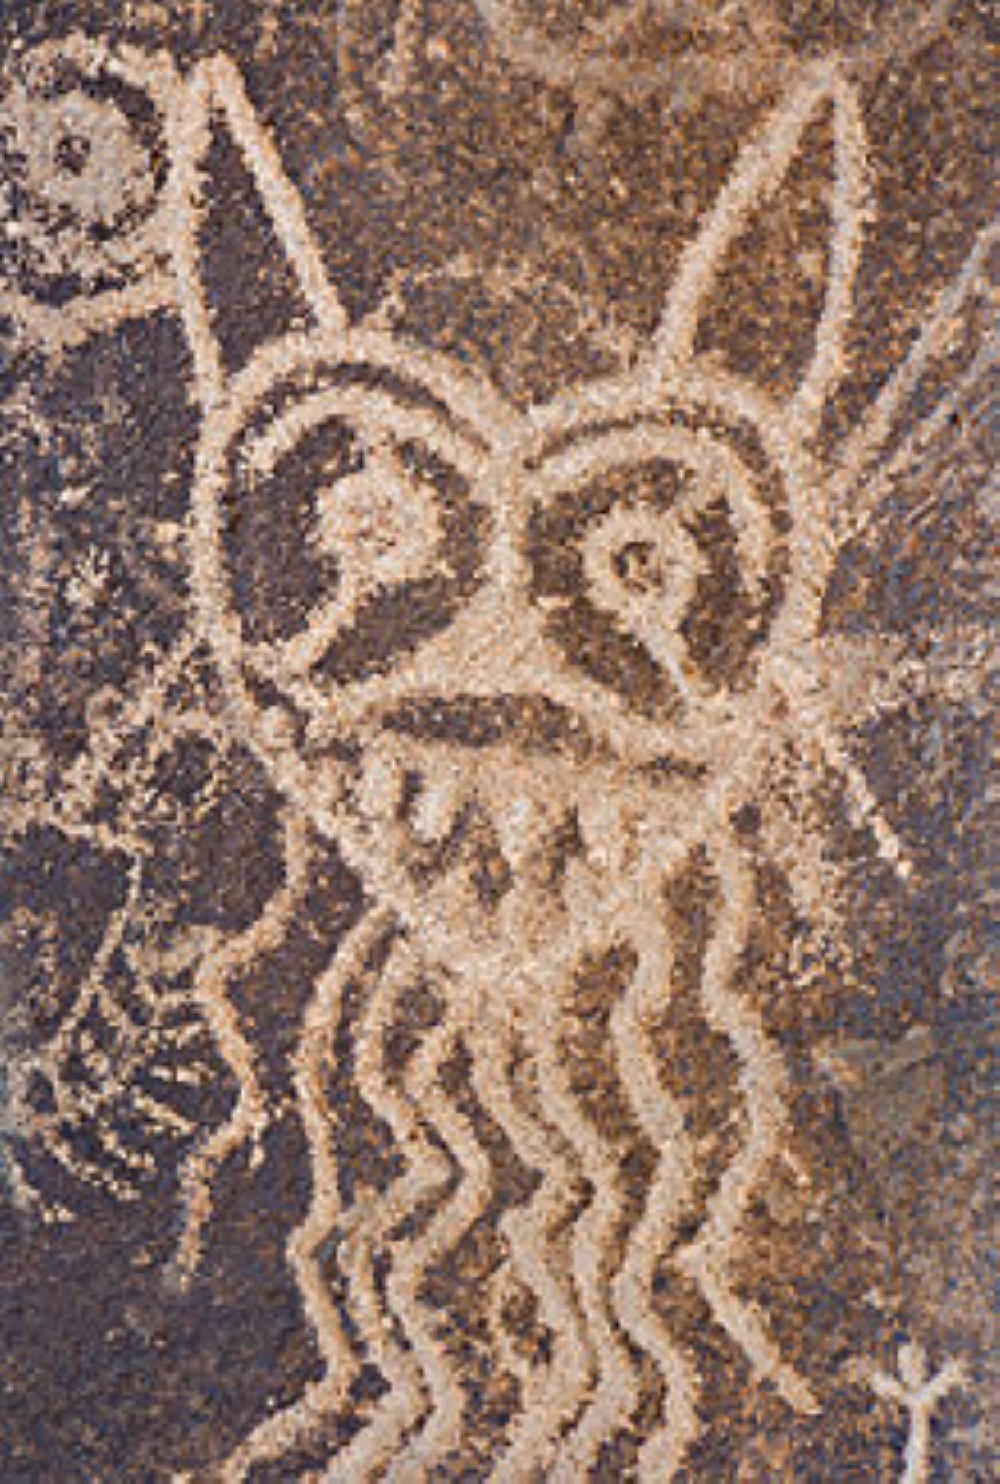 Ancient Petroglyphs  Pictographs  And Cave Drawings From